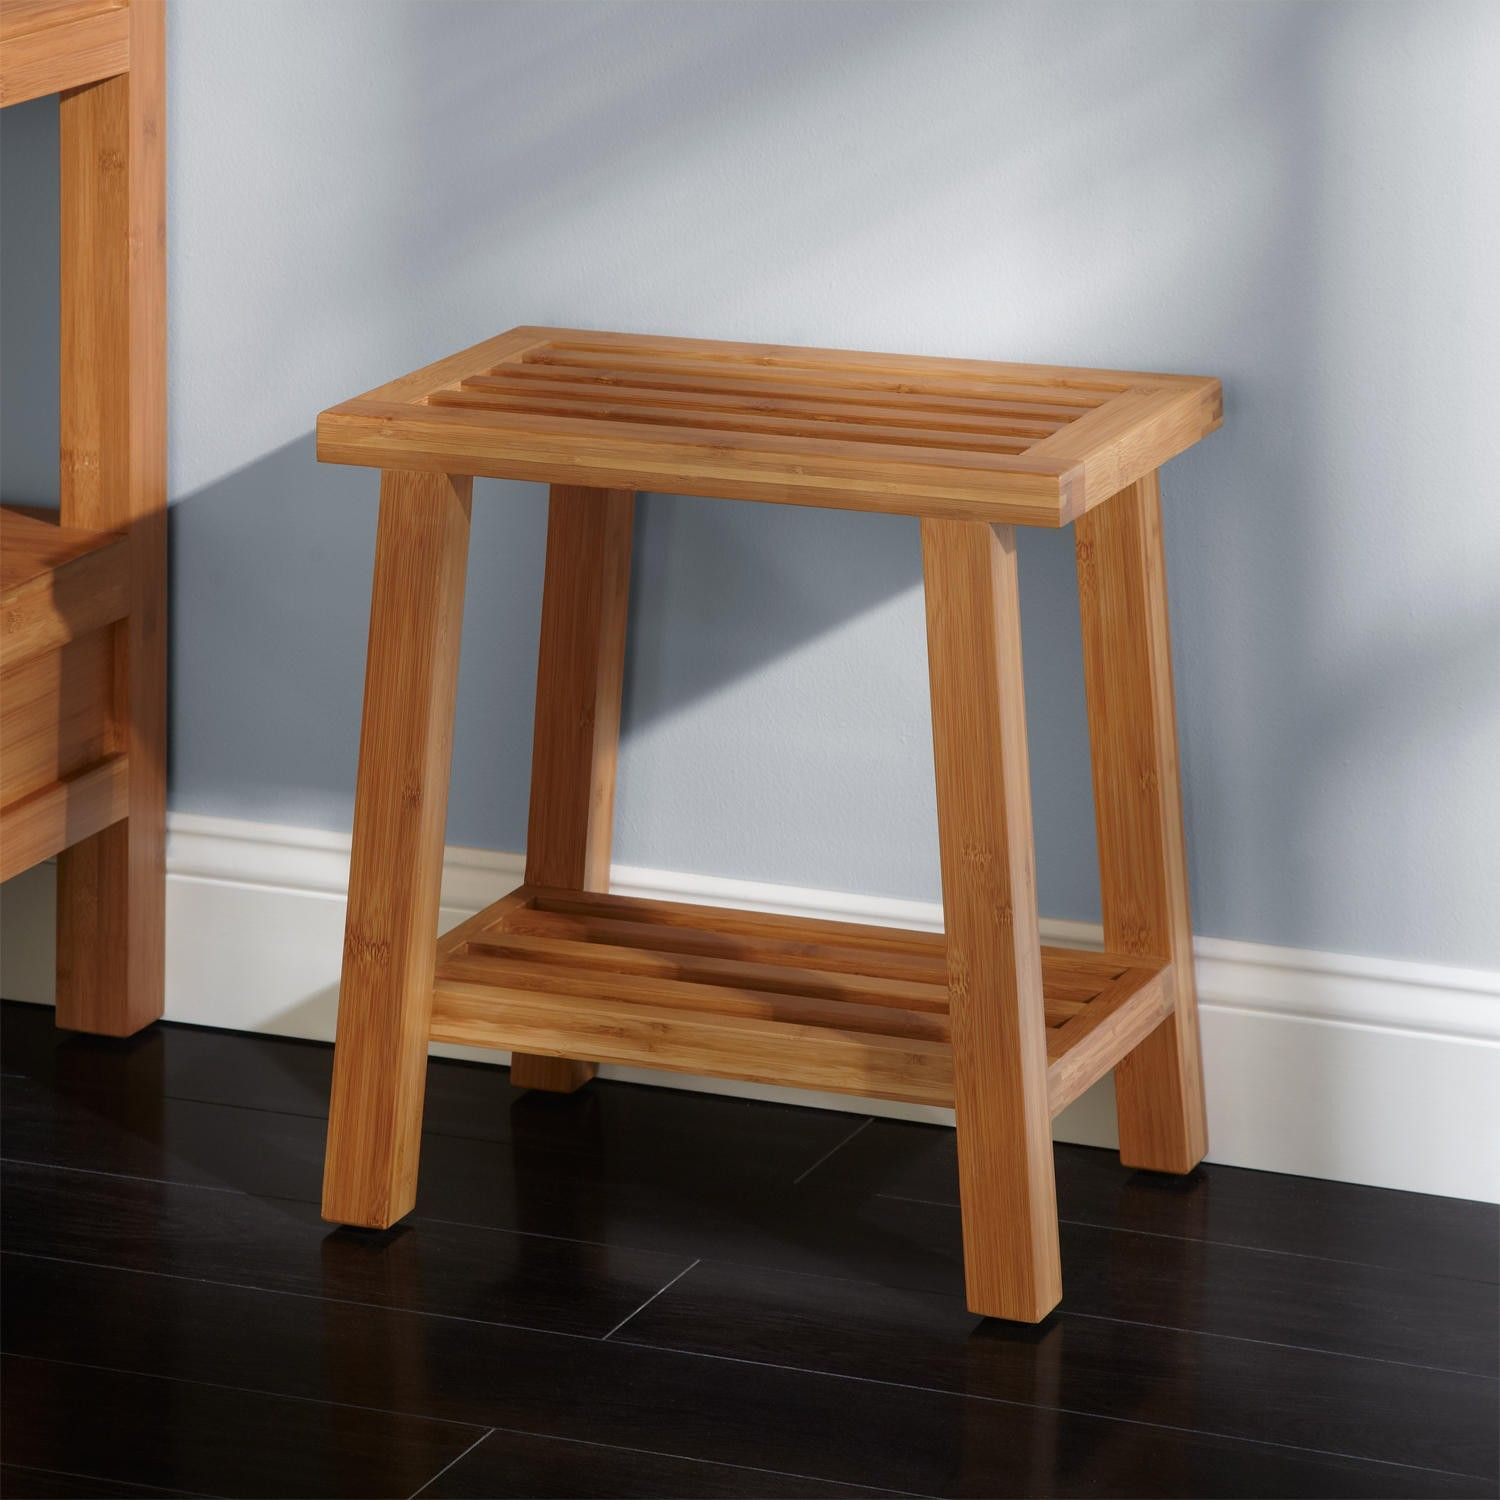 Freestanding Bamboo Slotted Bathroom Stool | Wood Boxes | Pinterest ...